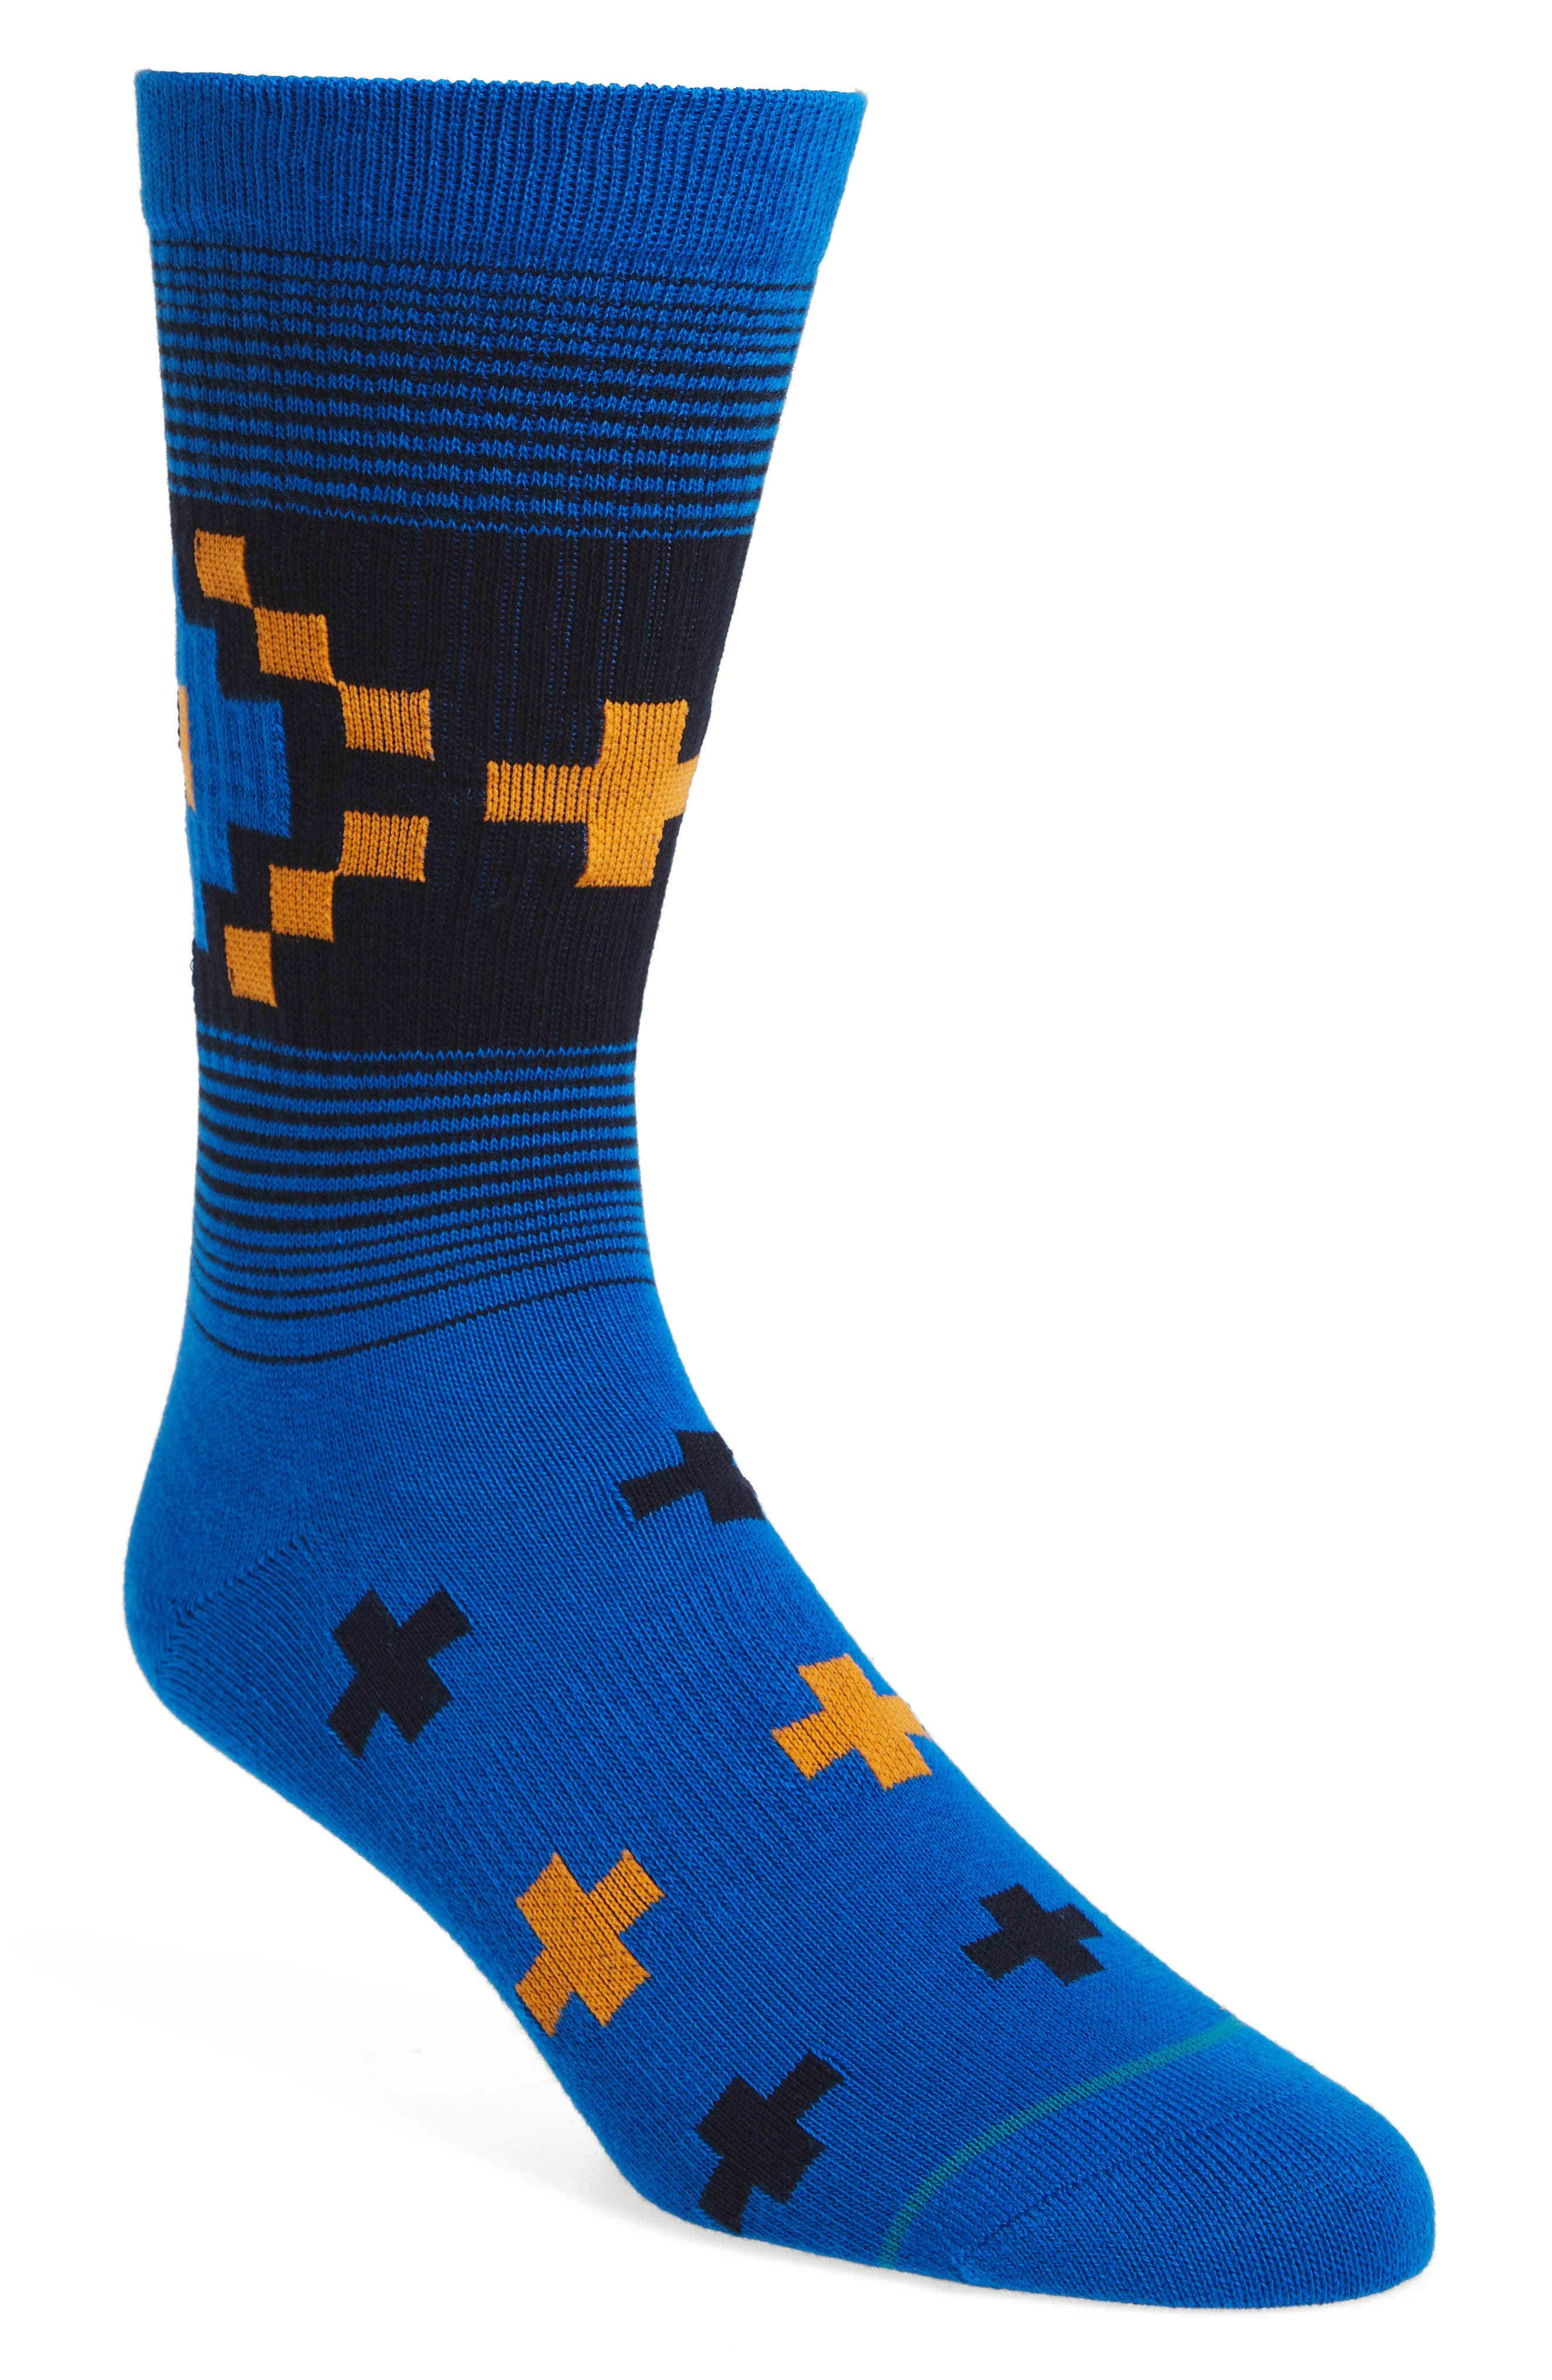 Alternate Image 1 Selected - Stance Classic Light Ysidro Socks